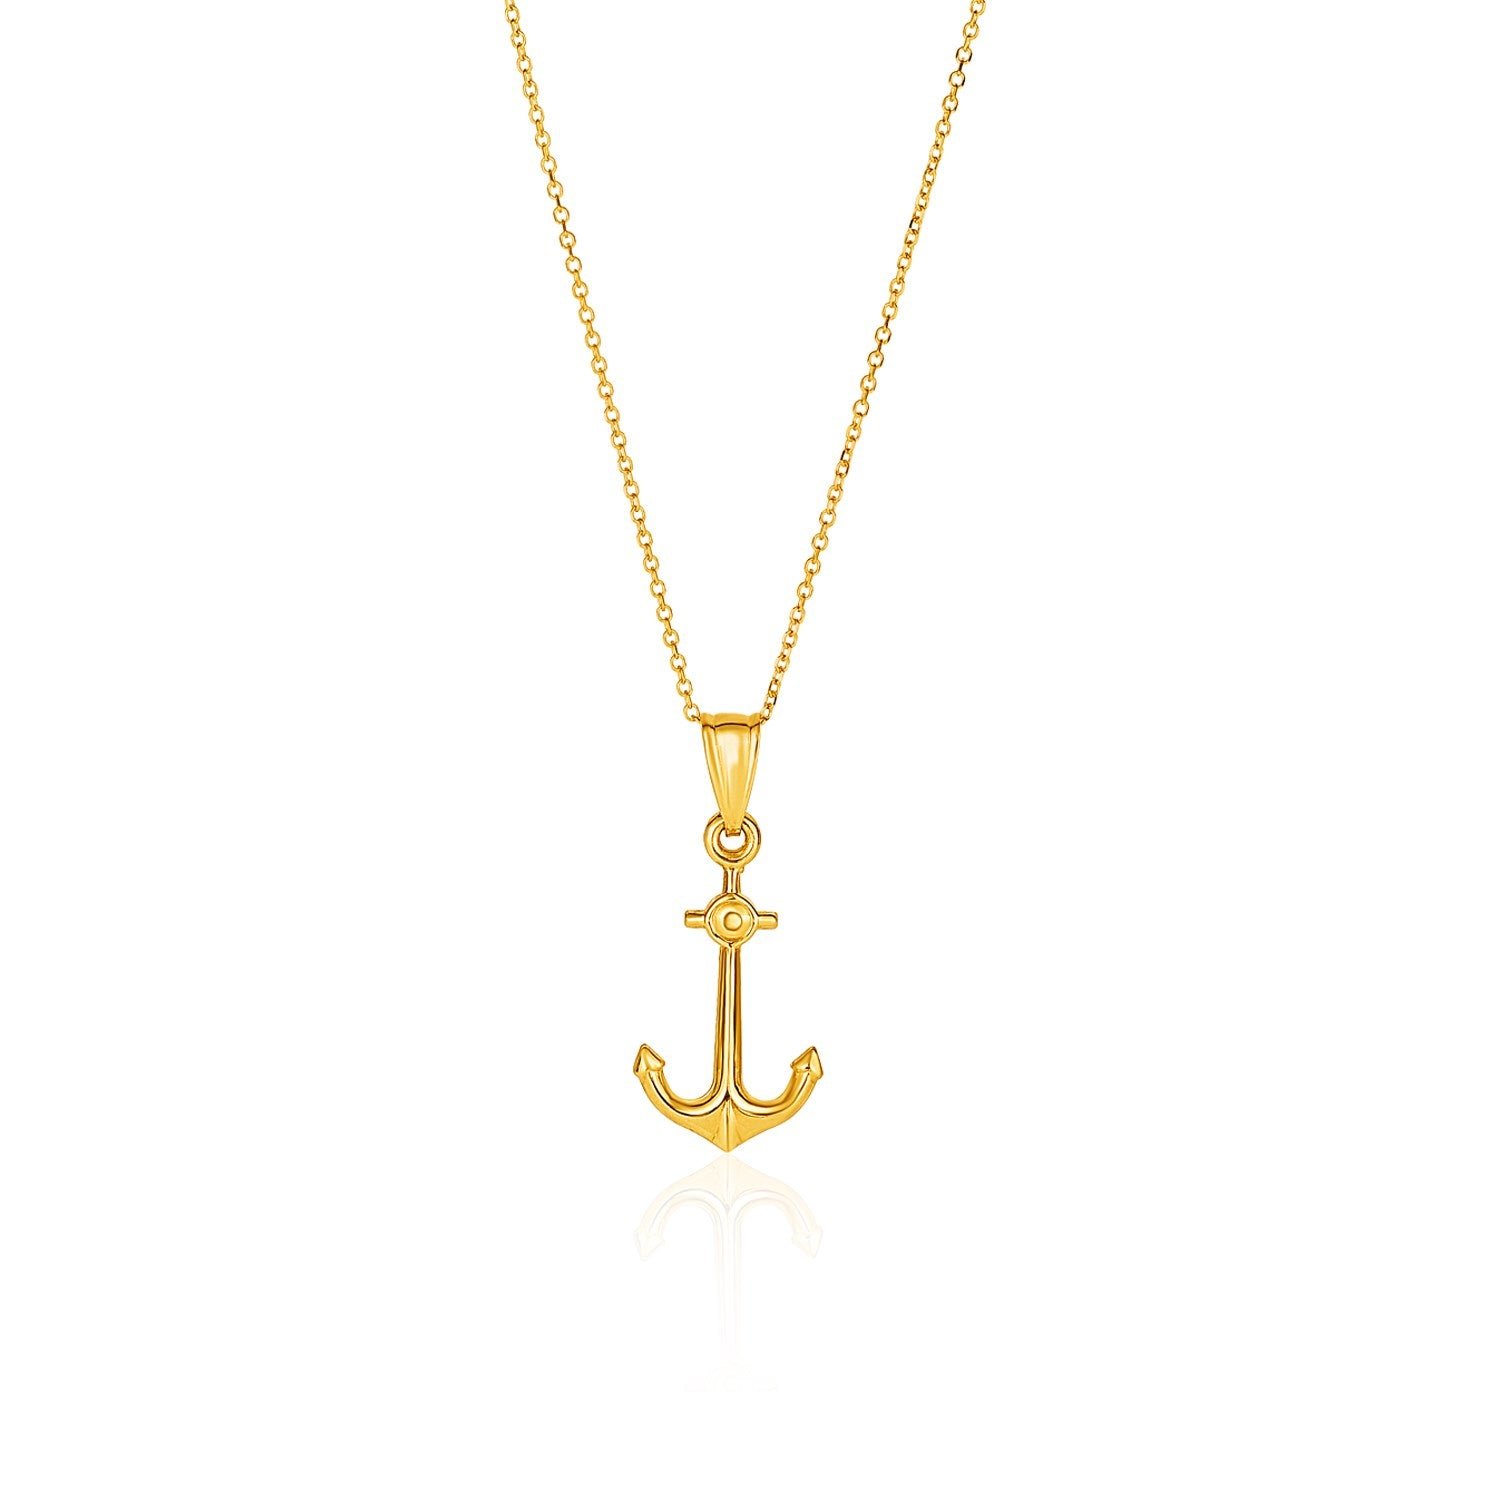 14K Yellow Gold Cable Chain with Anchor Pendant